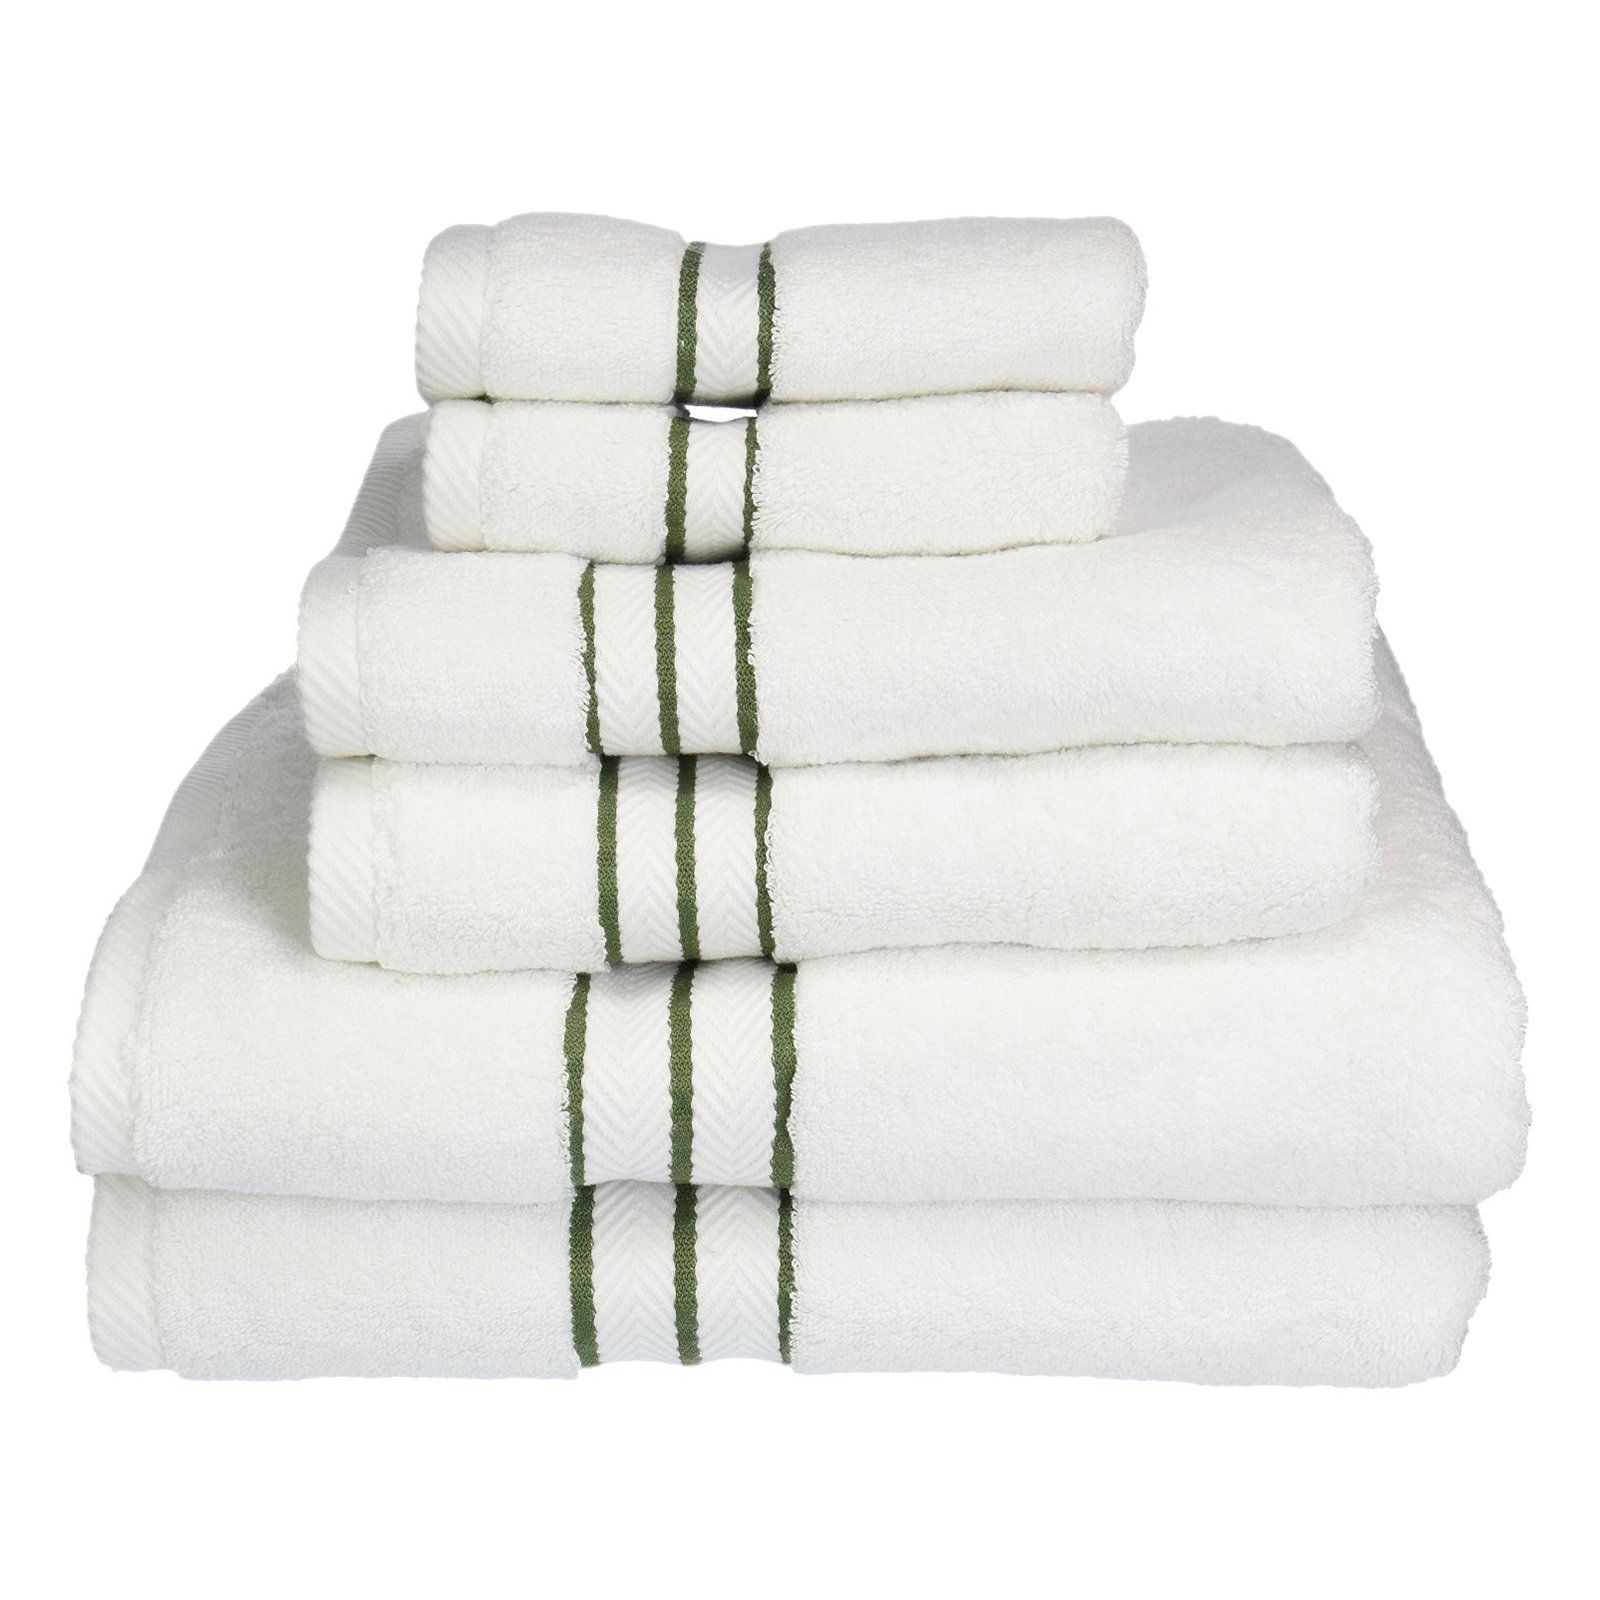 Superior 900 Gsm Long Staple Combed Cotton Hotel Collection 6